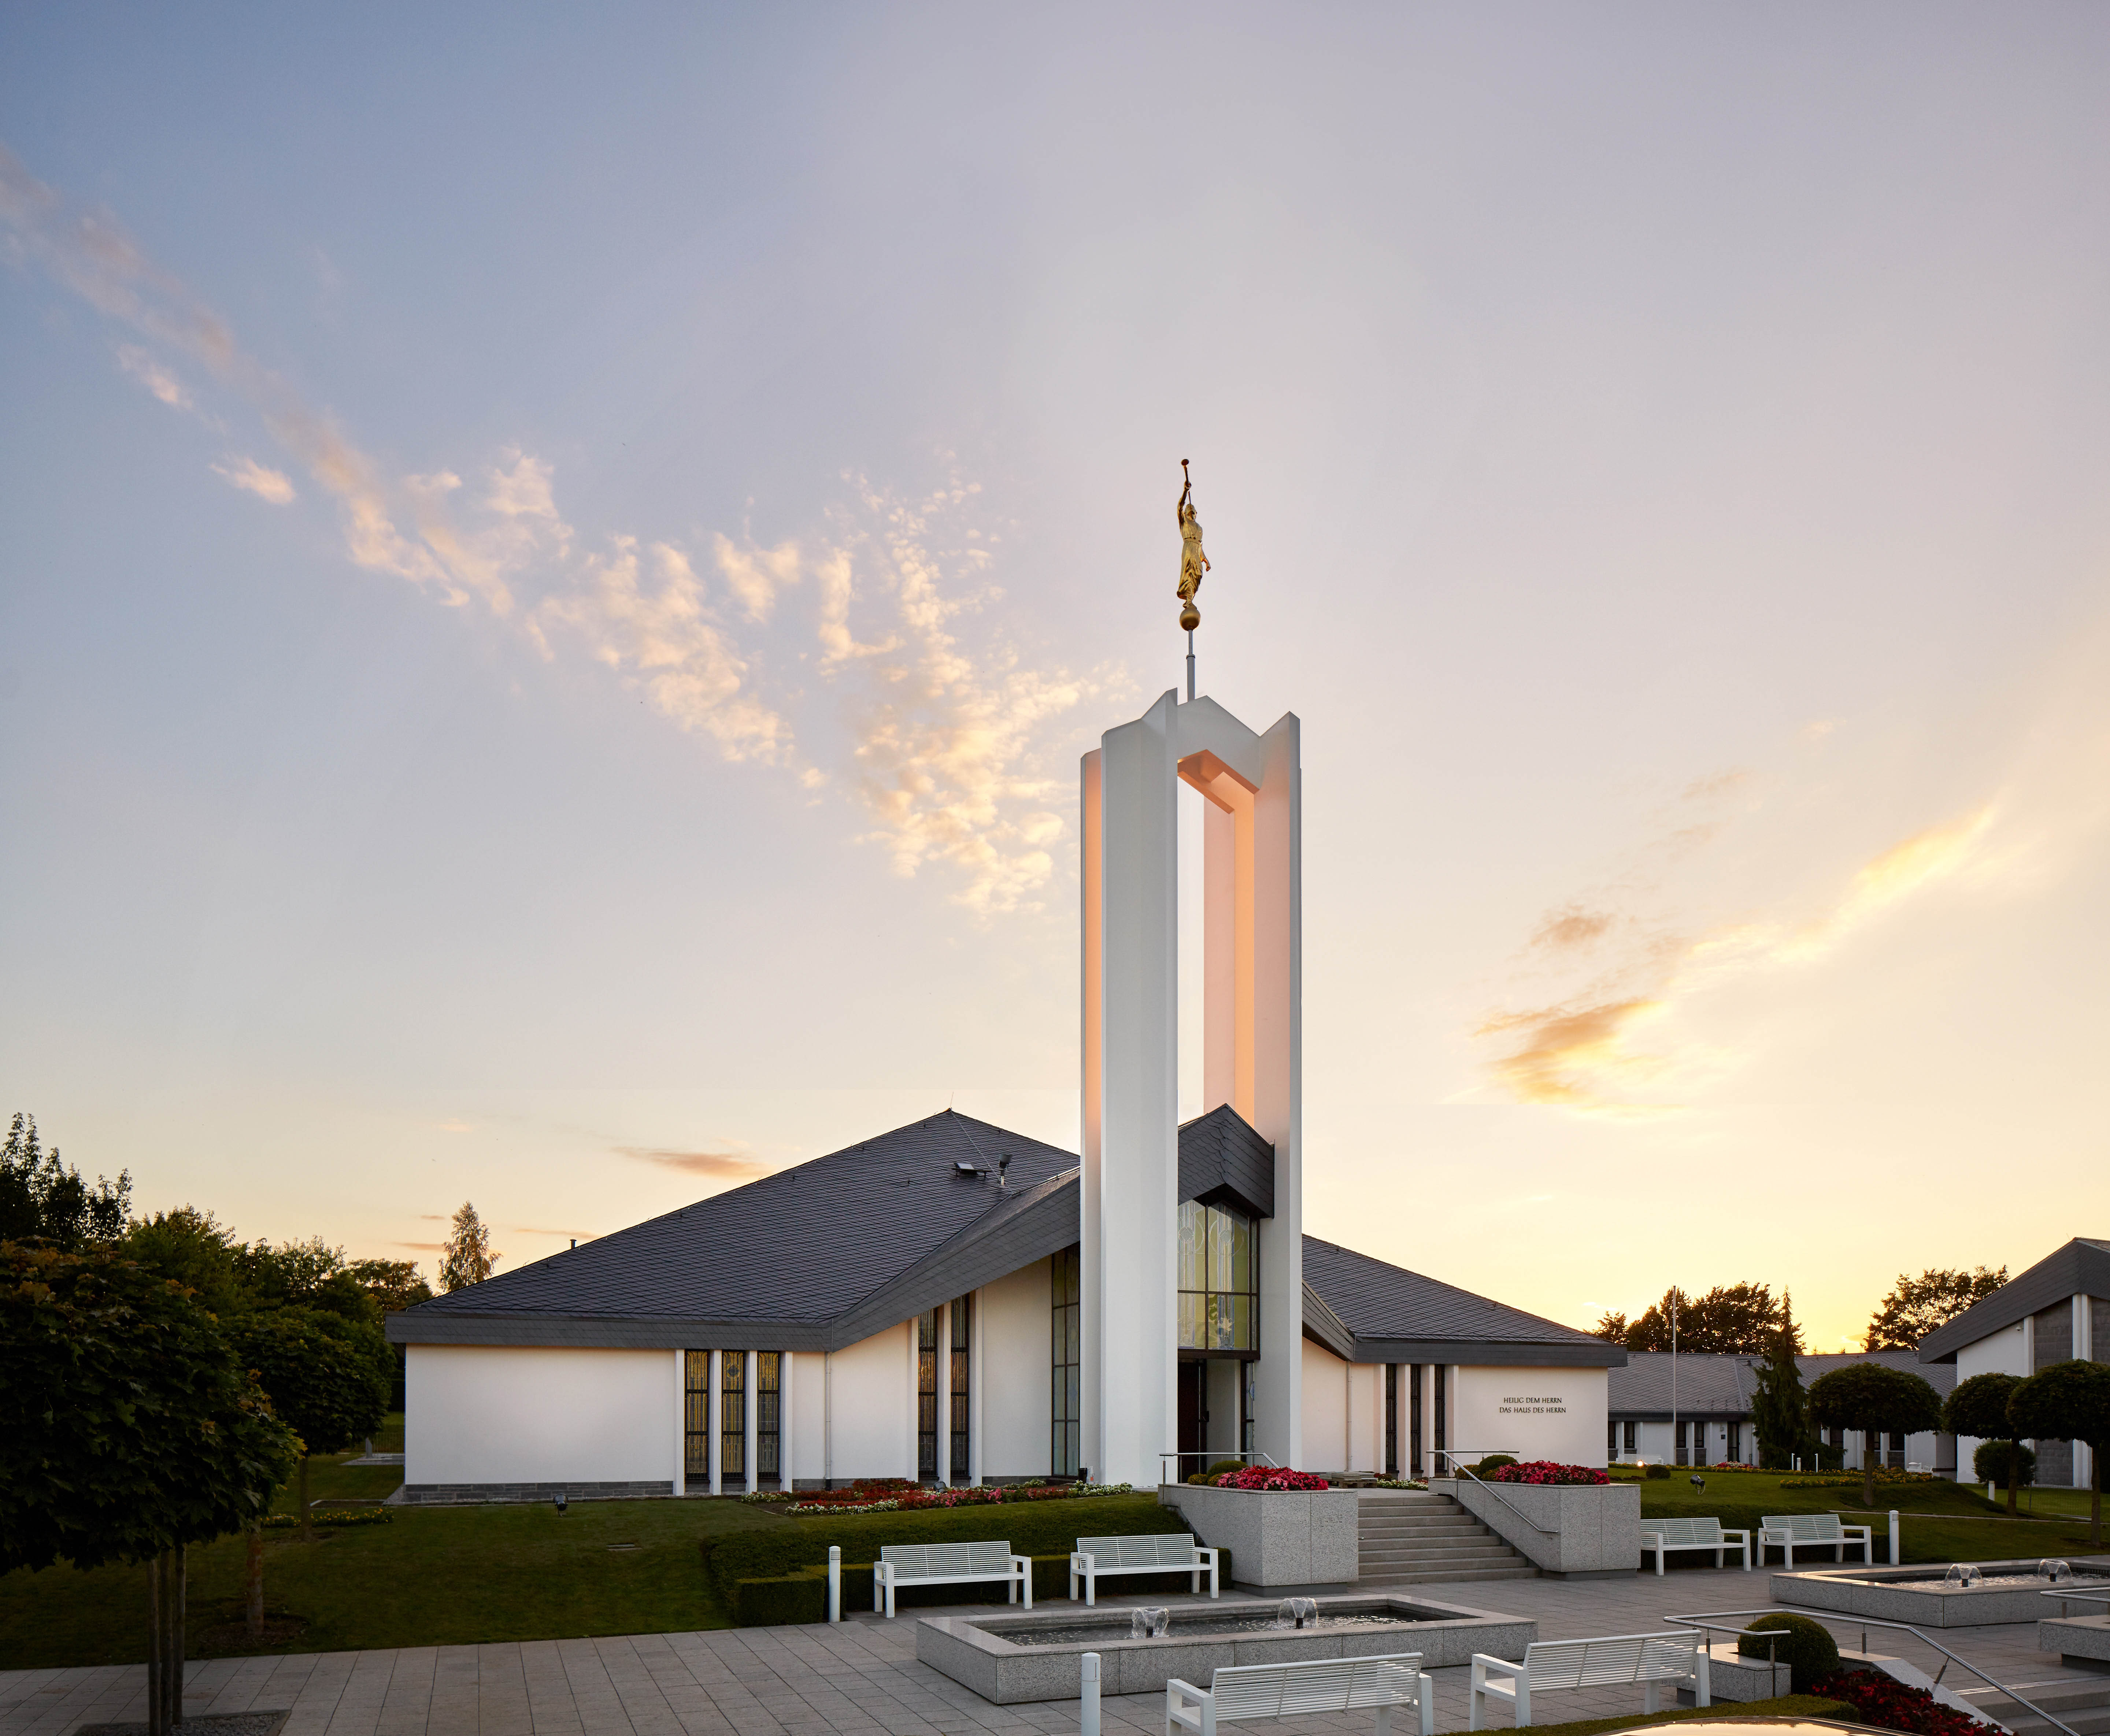 President Dieter F. Uchtdorf rededicated the Freiberg Germany Temple on Sept. 4, 2016. (Photo by Mormon Newsroom)